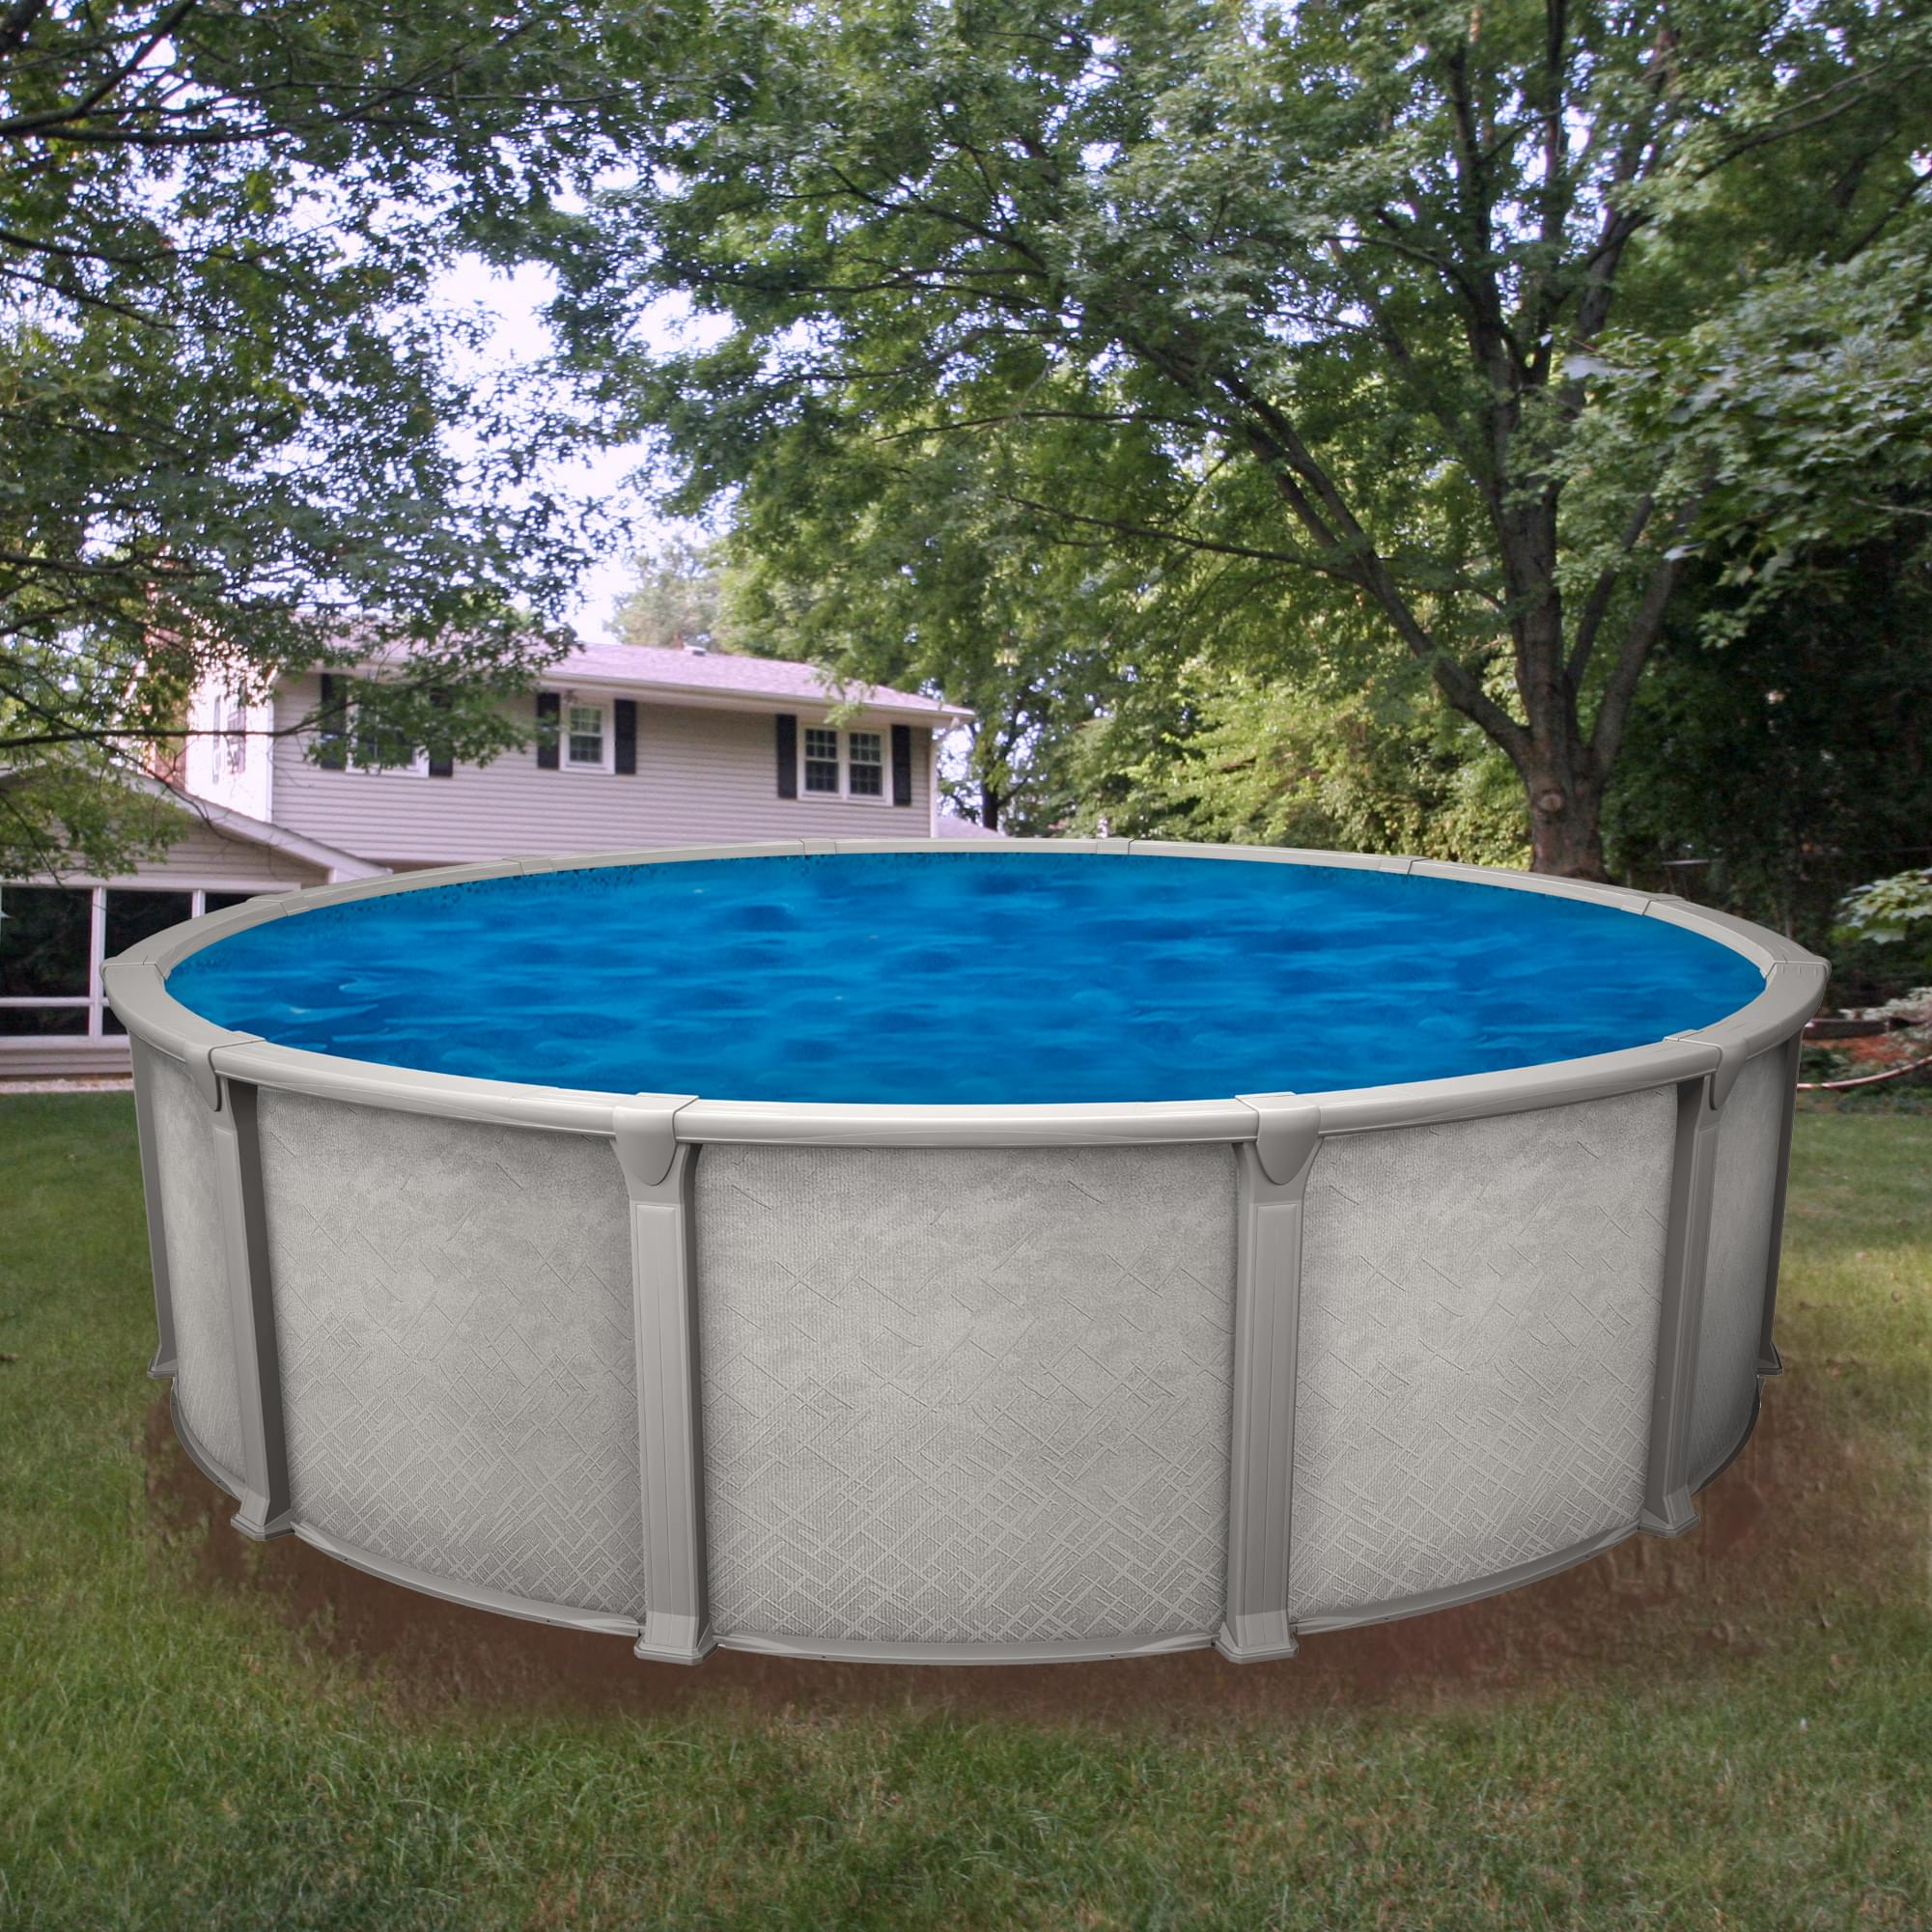 Galaxy 15 ft round above ground pool pool supplies canada for Club piscine above ground pools prices